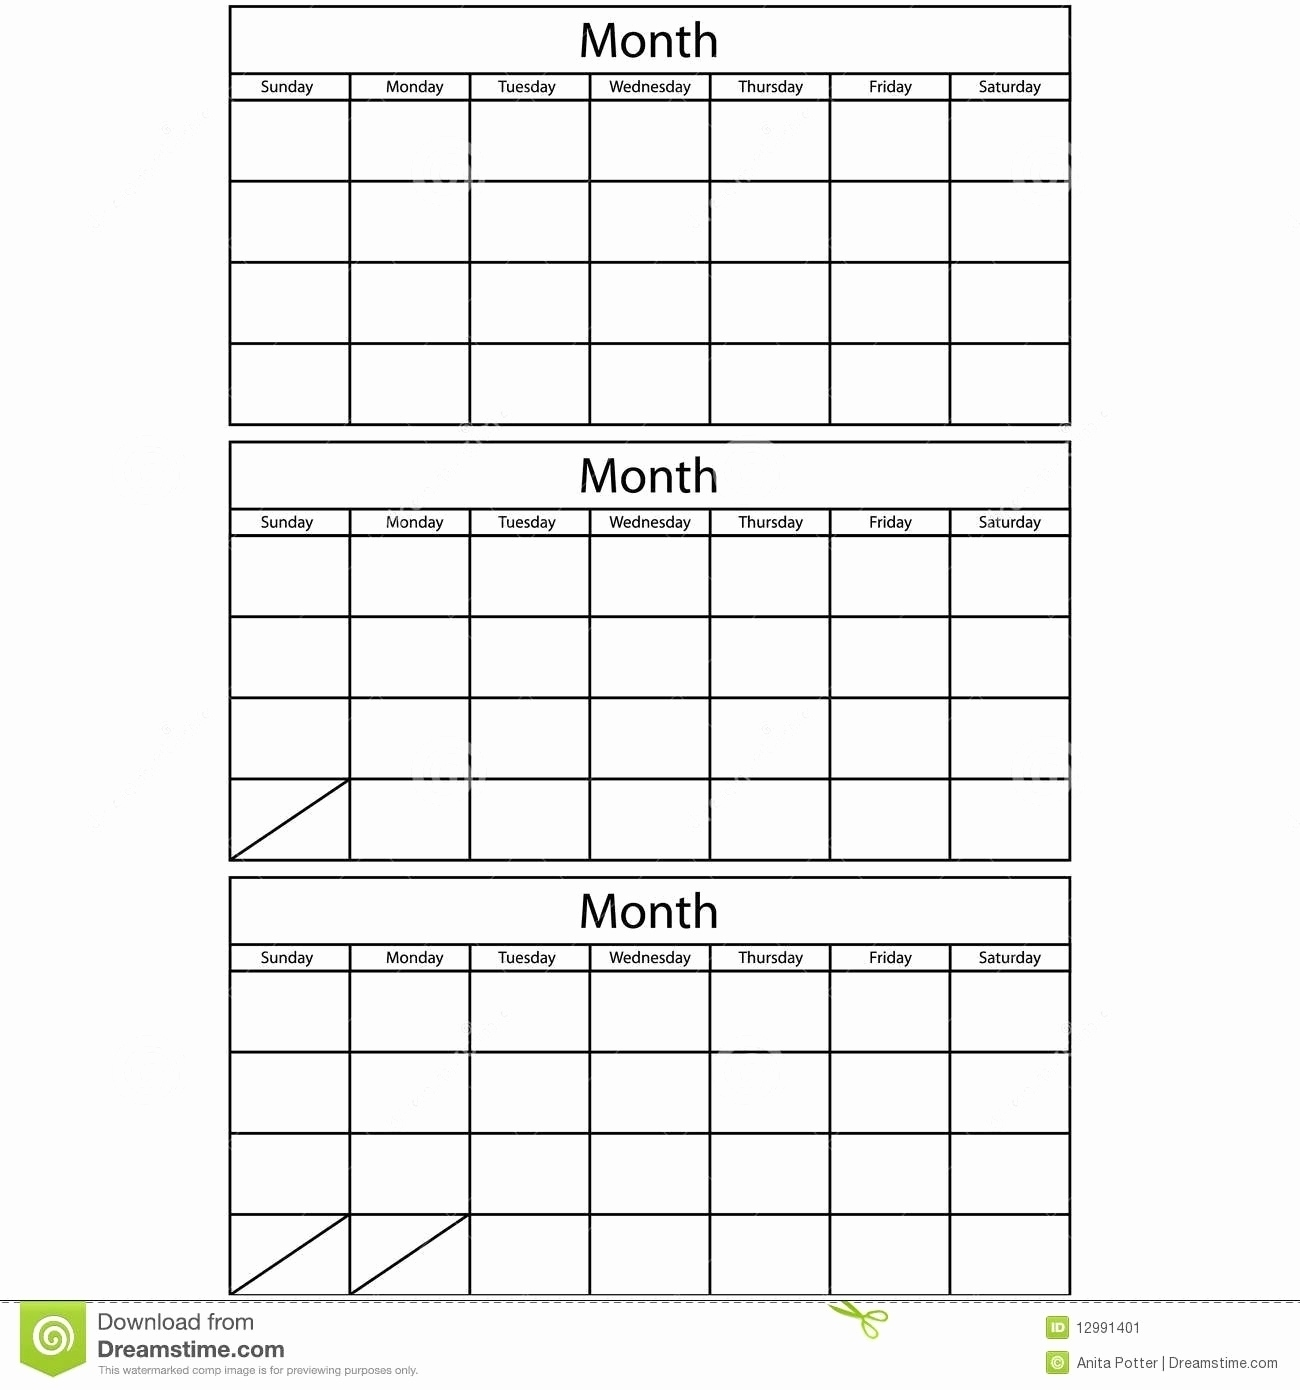 photograph relating to 3 Month Calendar Printable named Totally free 3 Thirty day period Calendar Templates - Calendar Determination Style and design